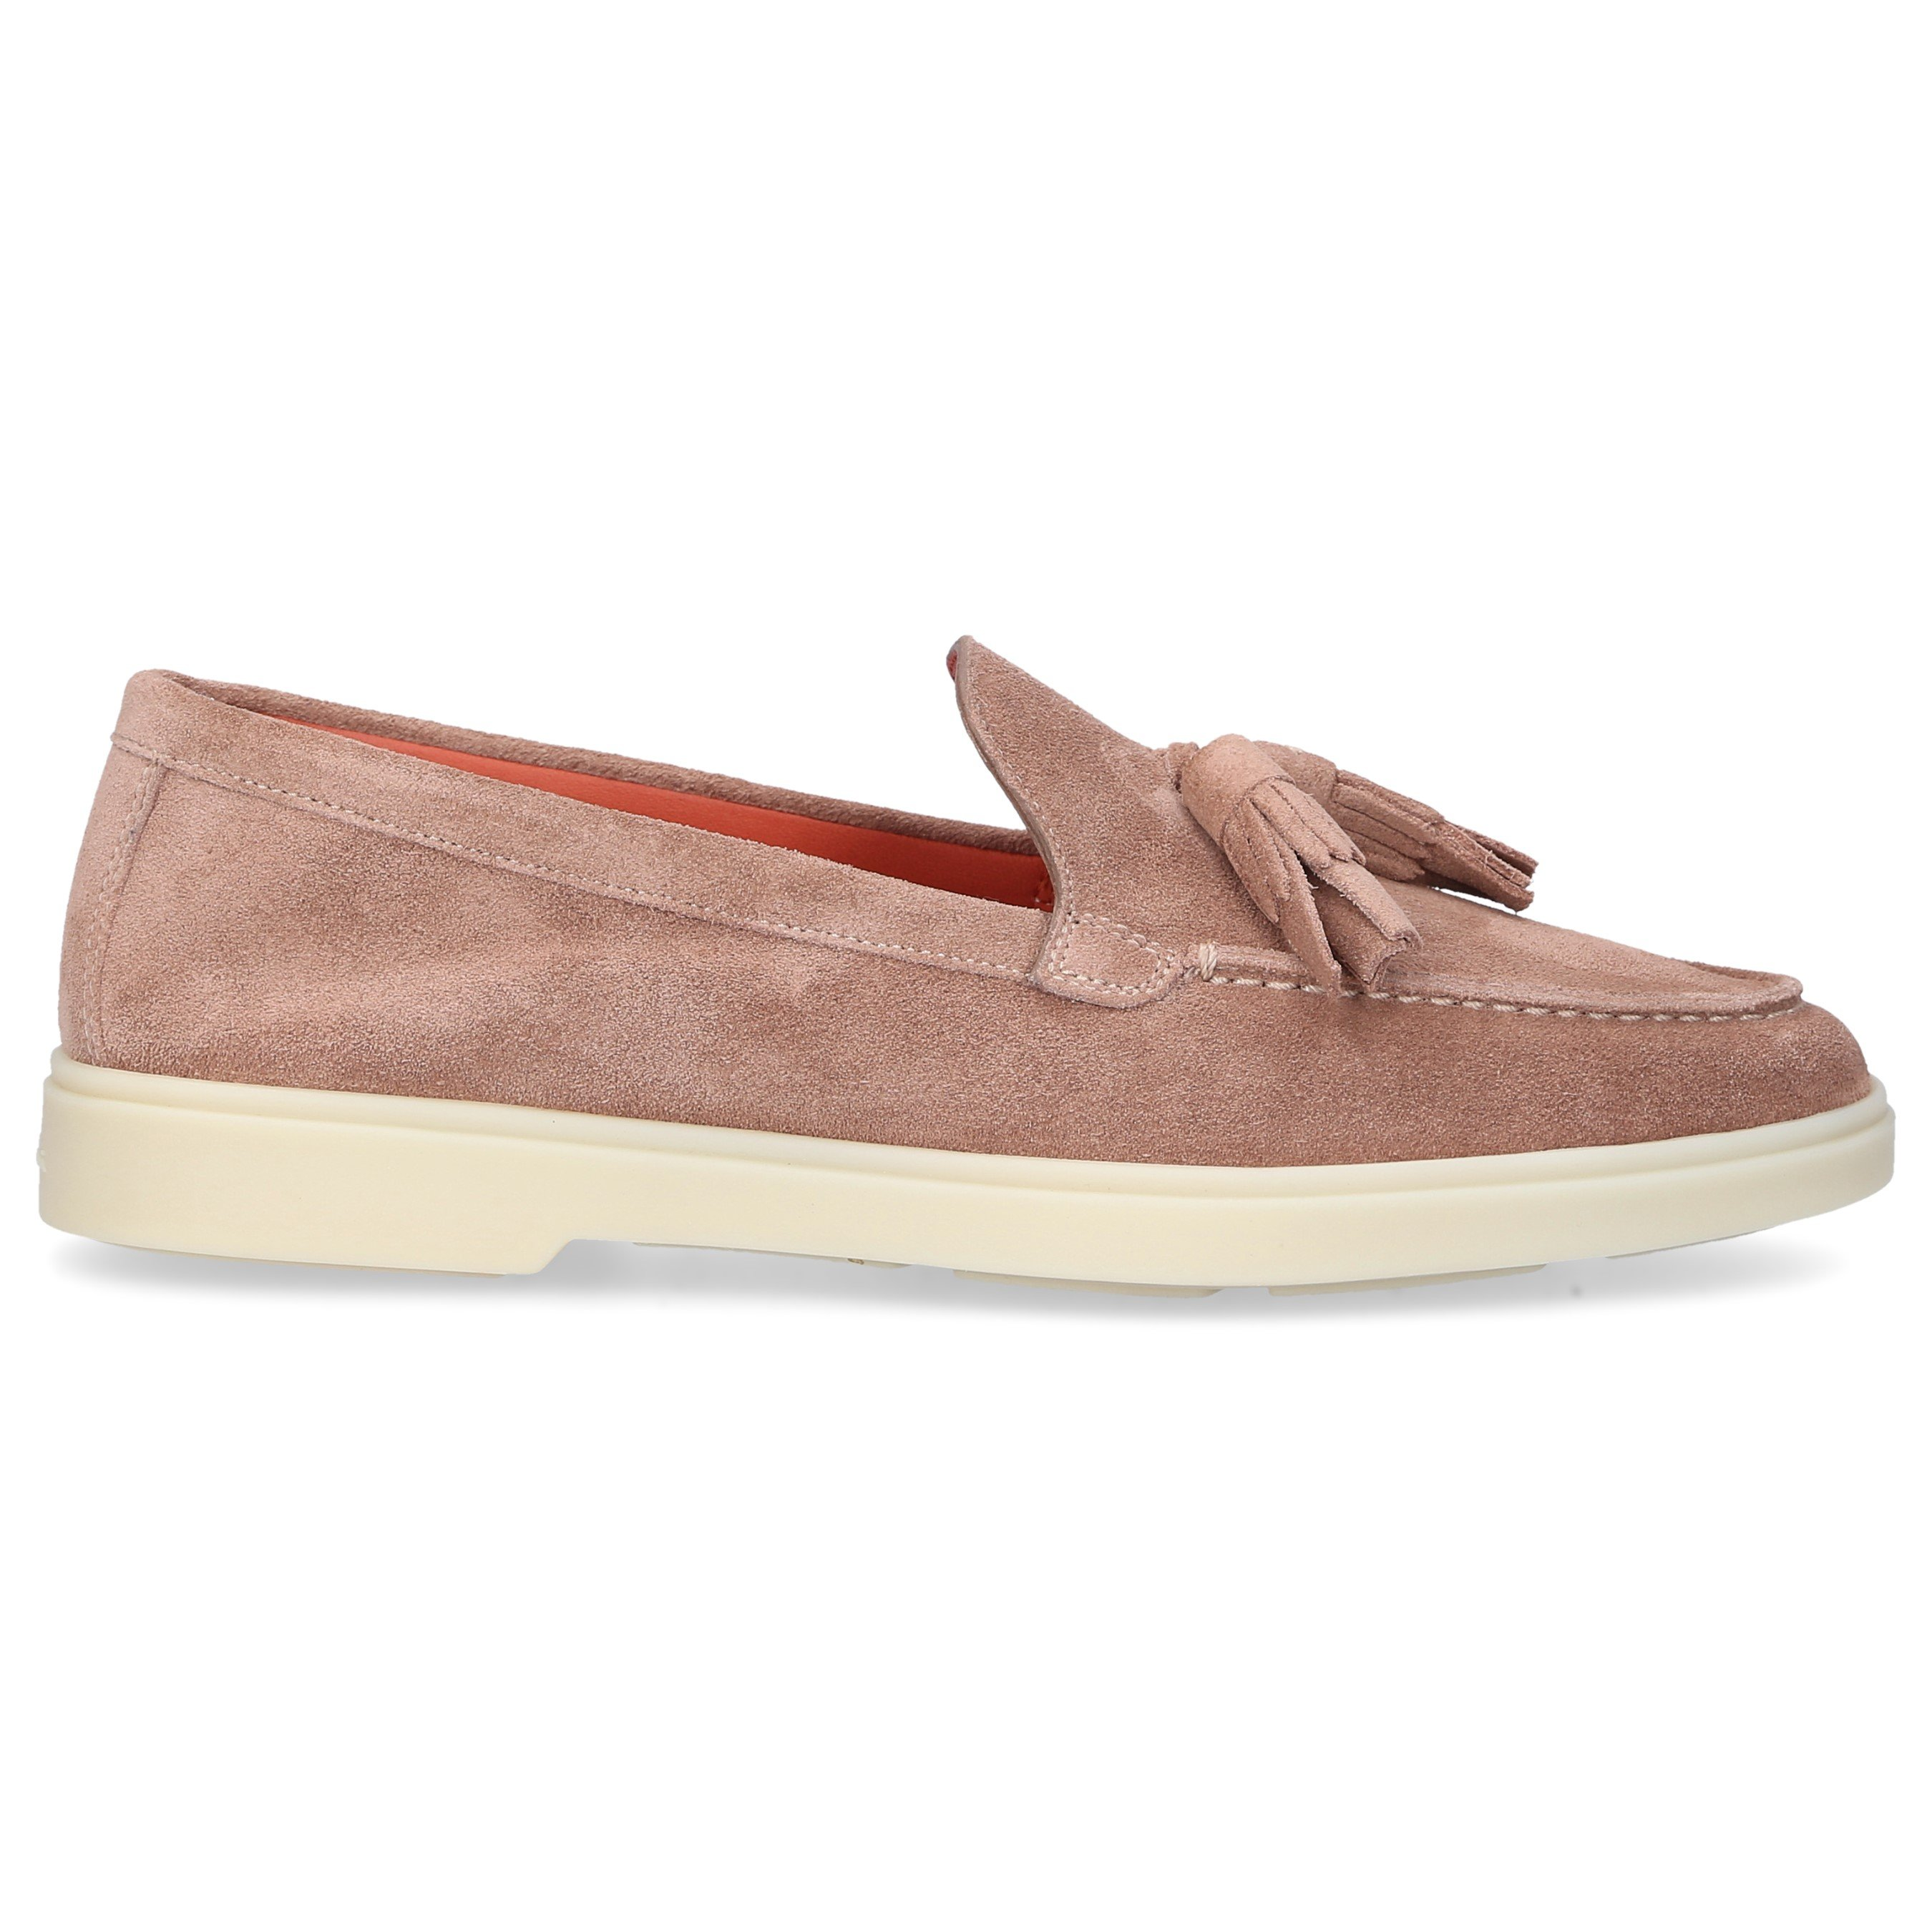 Santoni LOAFERS 58744 SUEDE PALE PINK